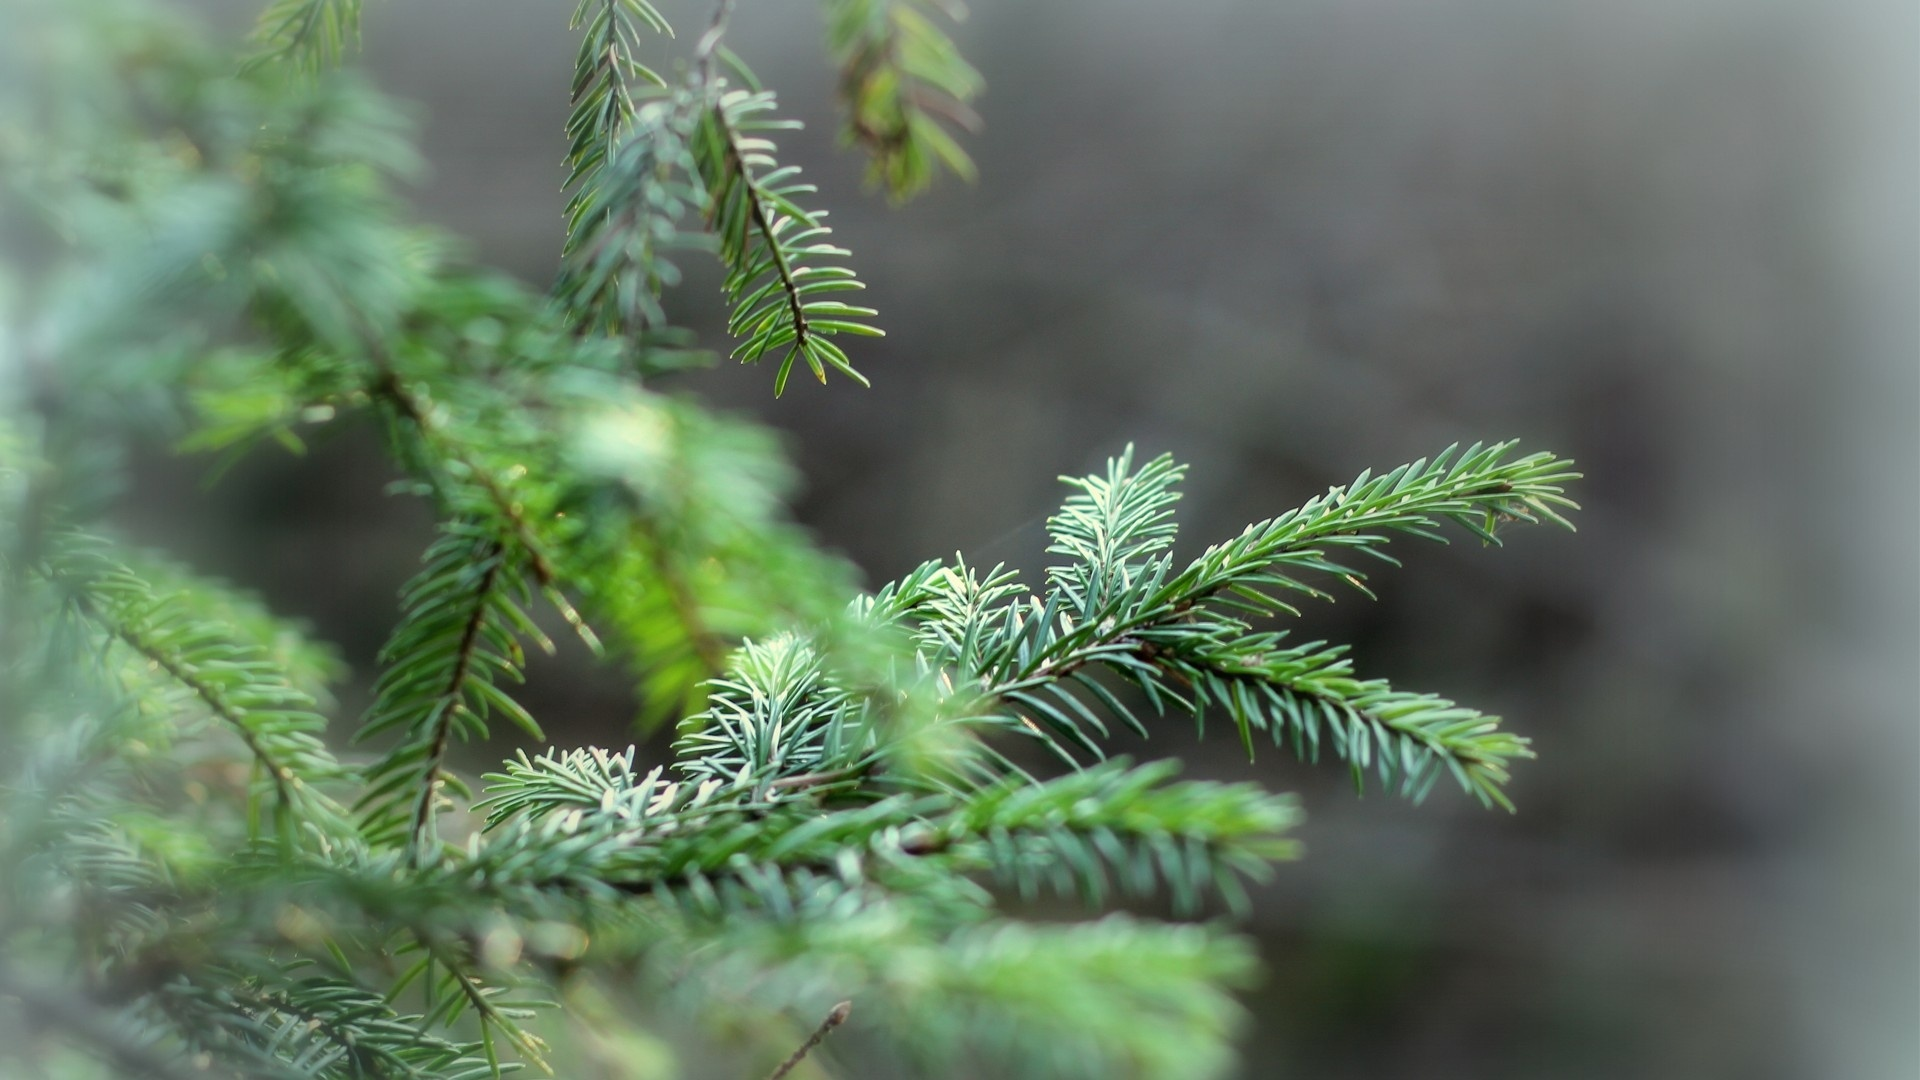 Spruce Branches wallpaper for pc